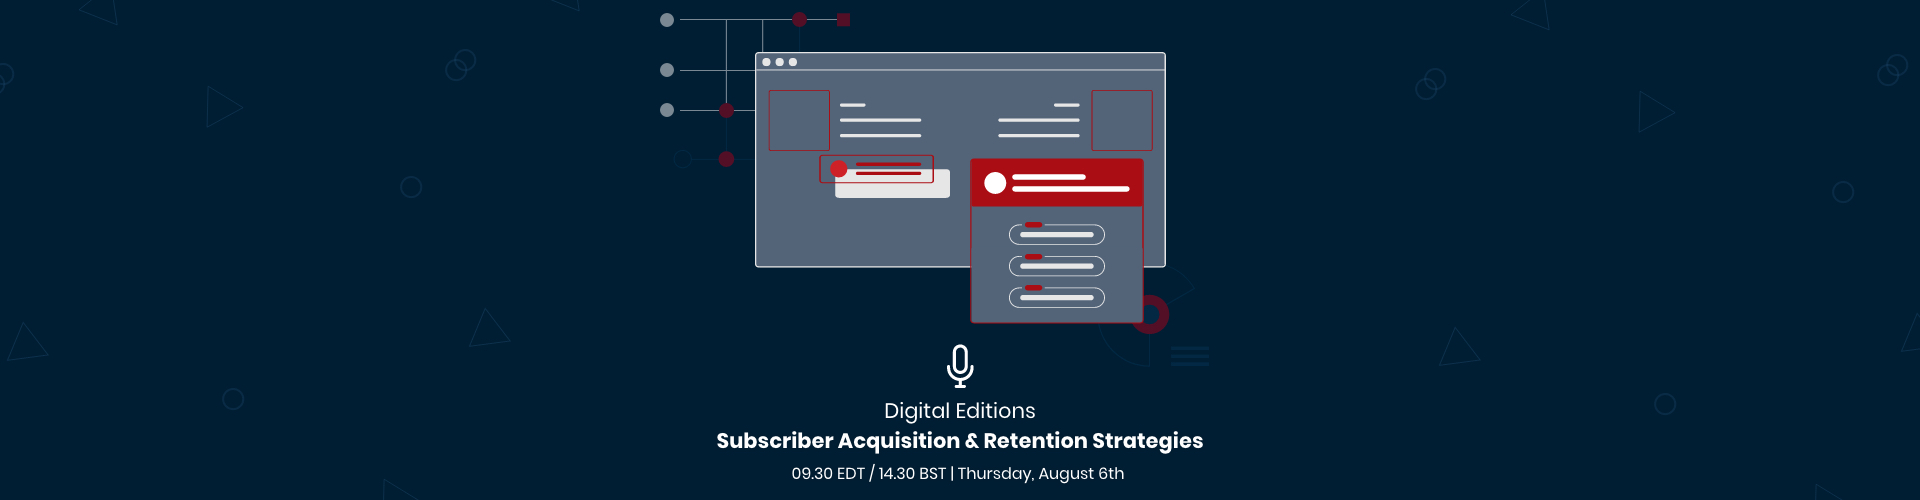 Image of Webinar: Digital Editions: Subscriber Acquisition & Retention Strategies